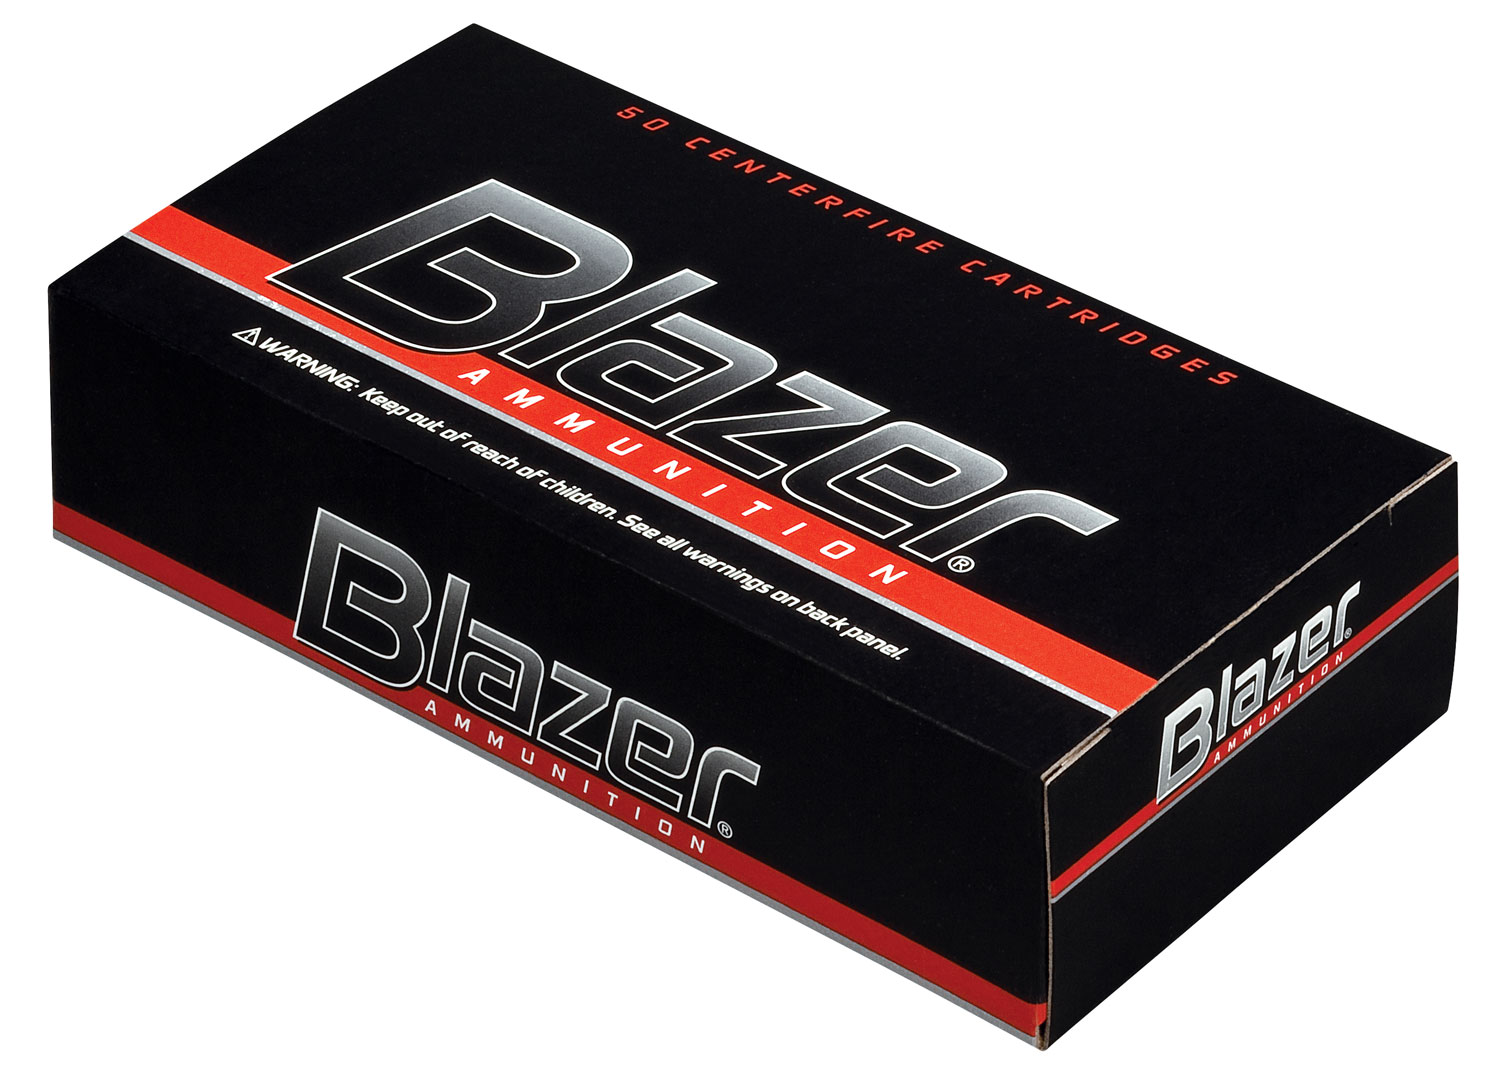 CCI 3556 Blazer   44 Special 200 GR Jacketed Hollow Point 50 Bx/ 20 Cs